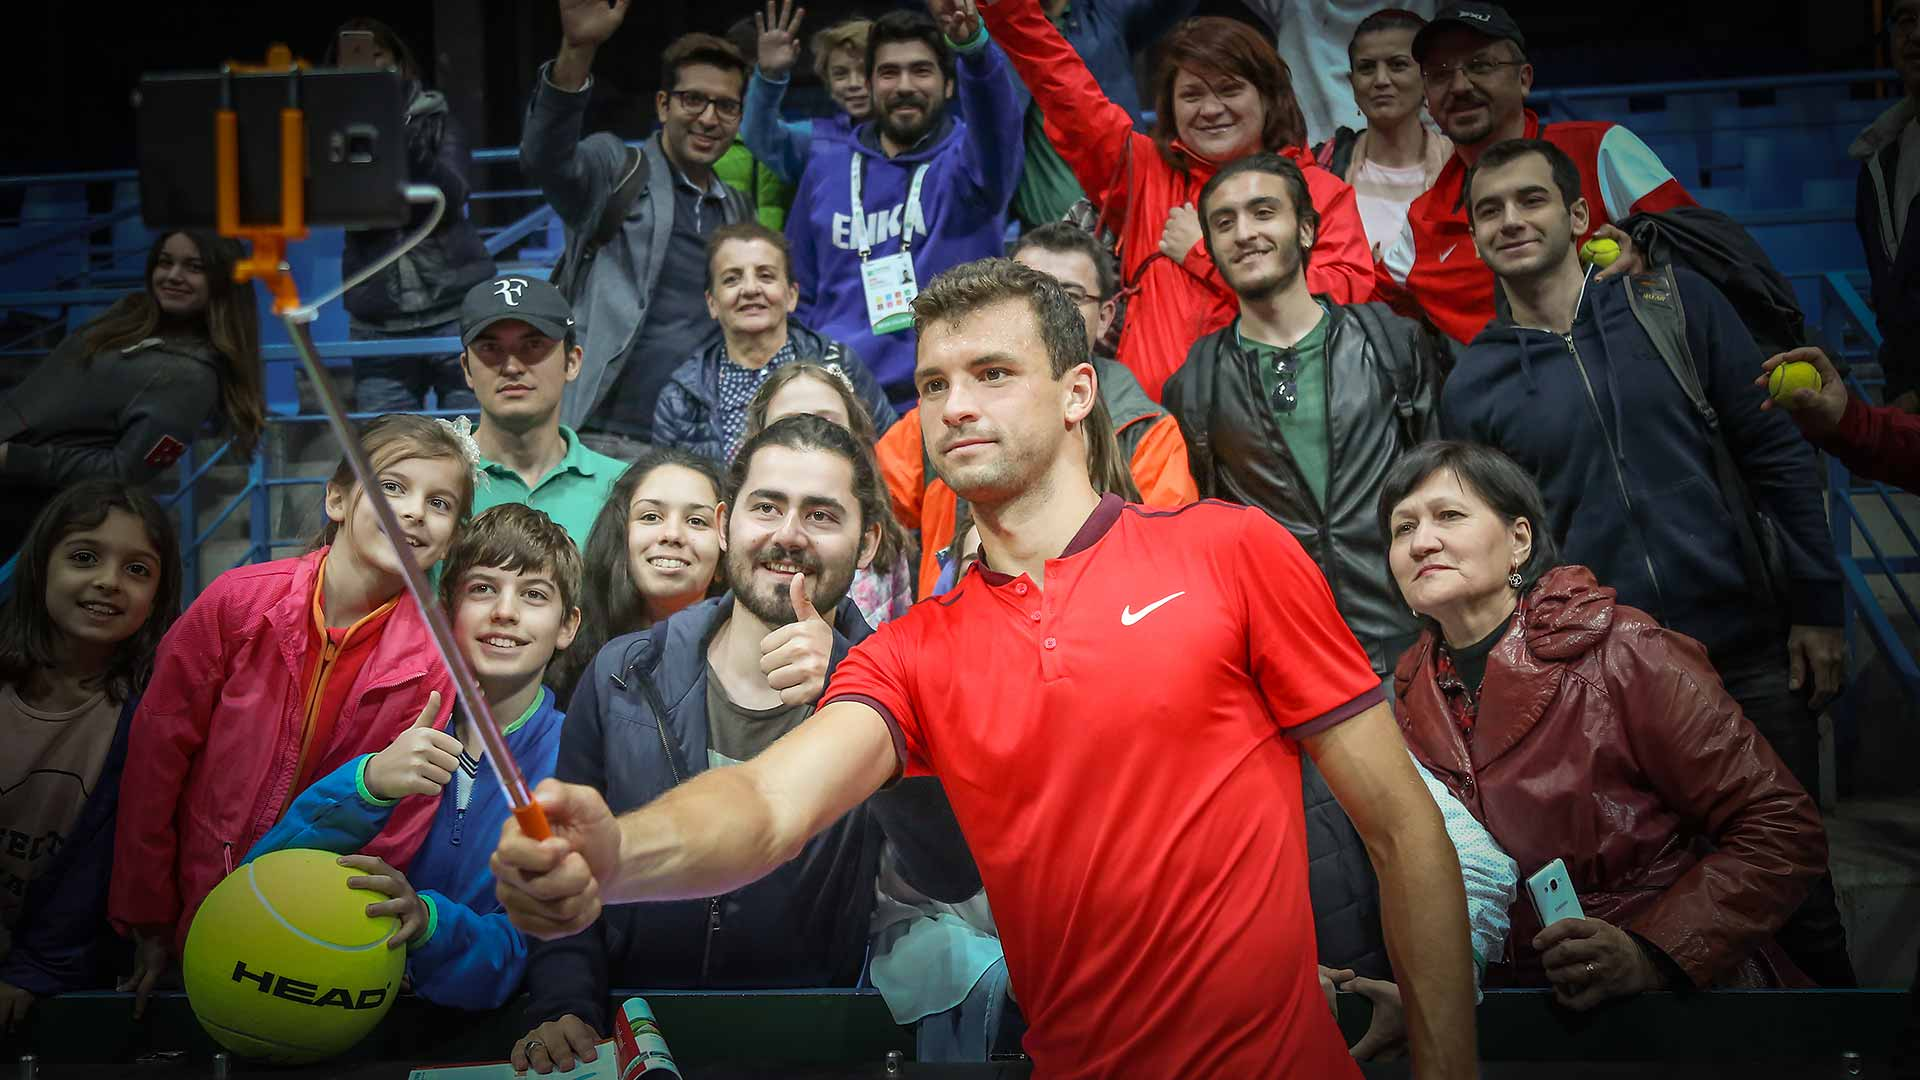 Grigor Dimitrov takes a selfie with fans after a successful outing in Istanbul.